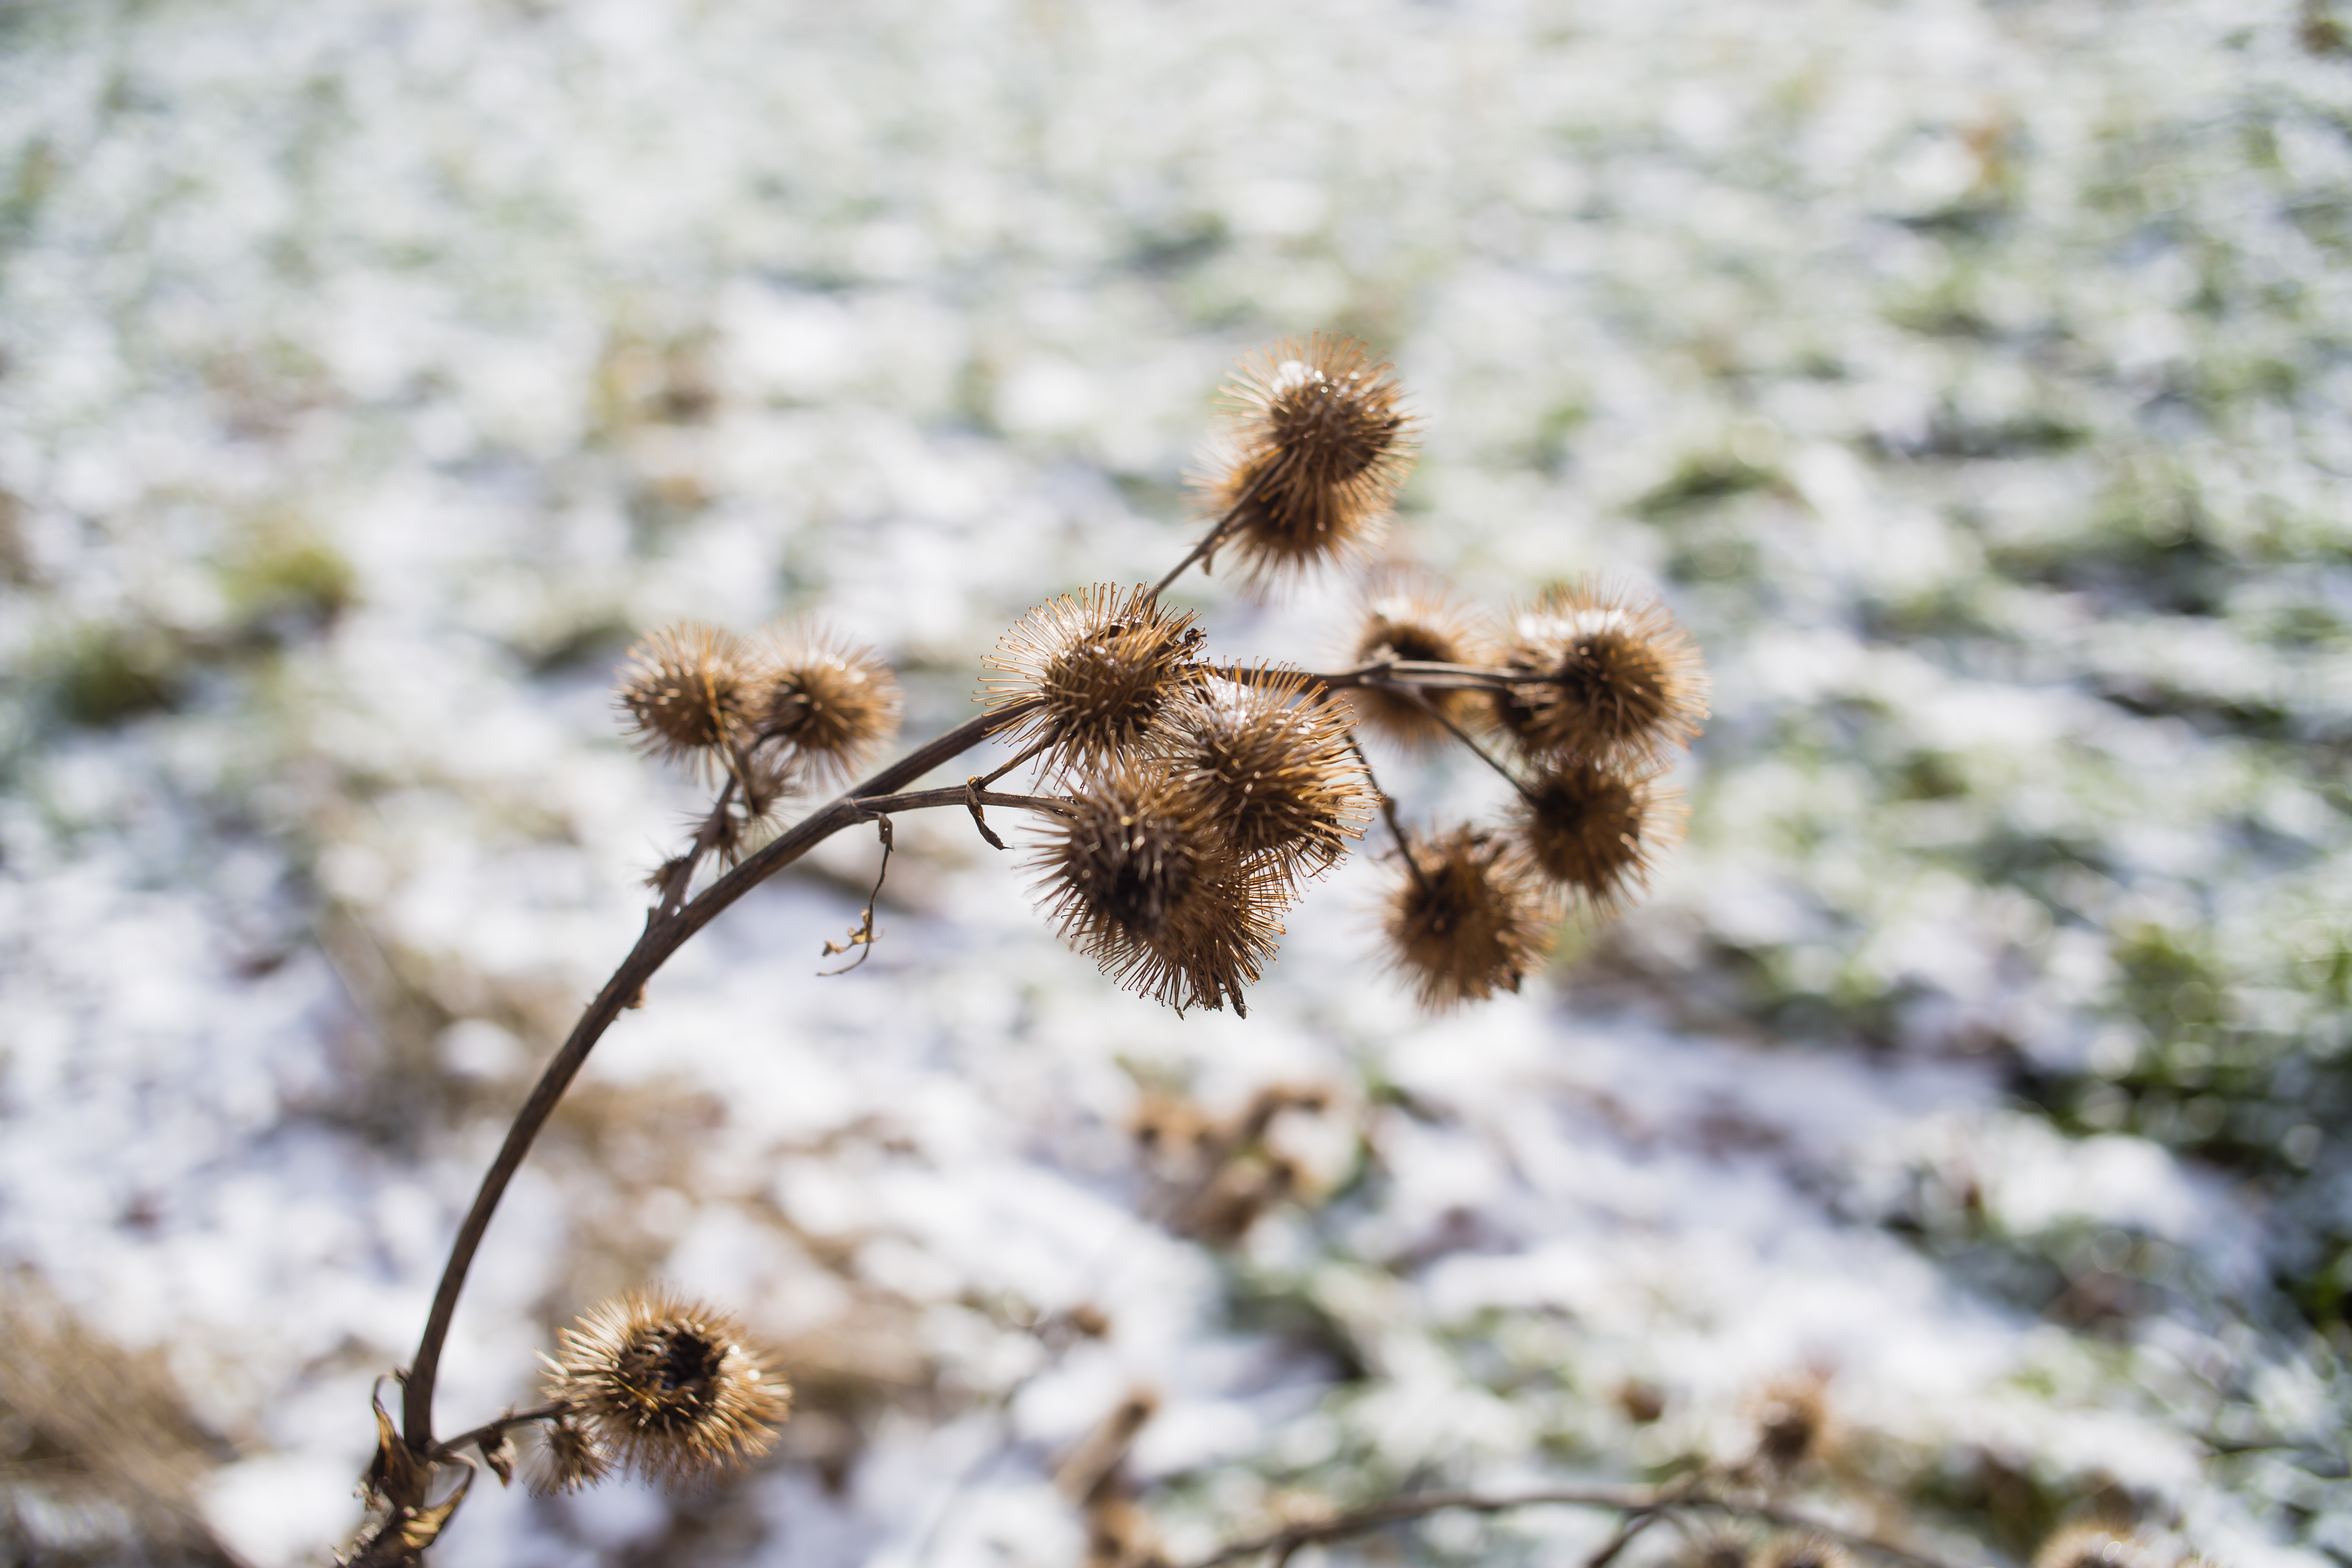 Cold Winter Landscapte Plants Outdoor, 28mm, Mark III, Grass, Green, HQ Photo